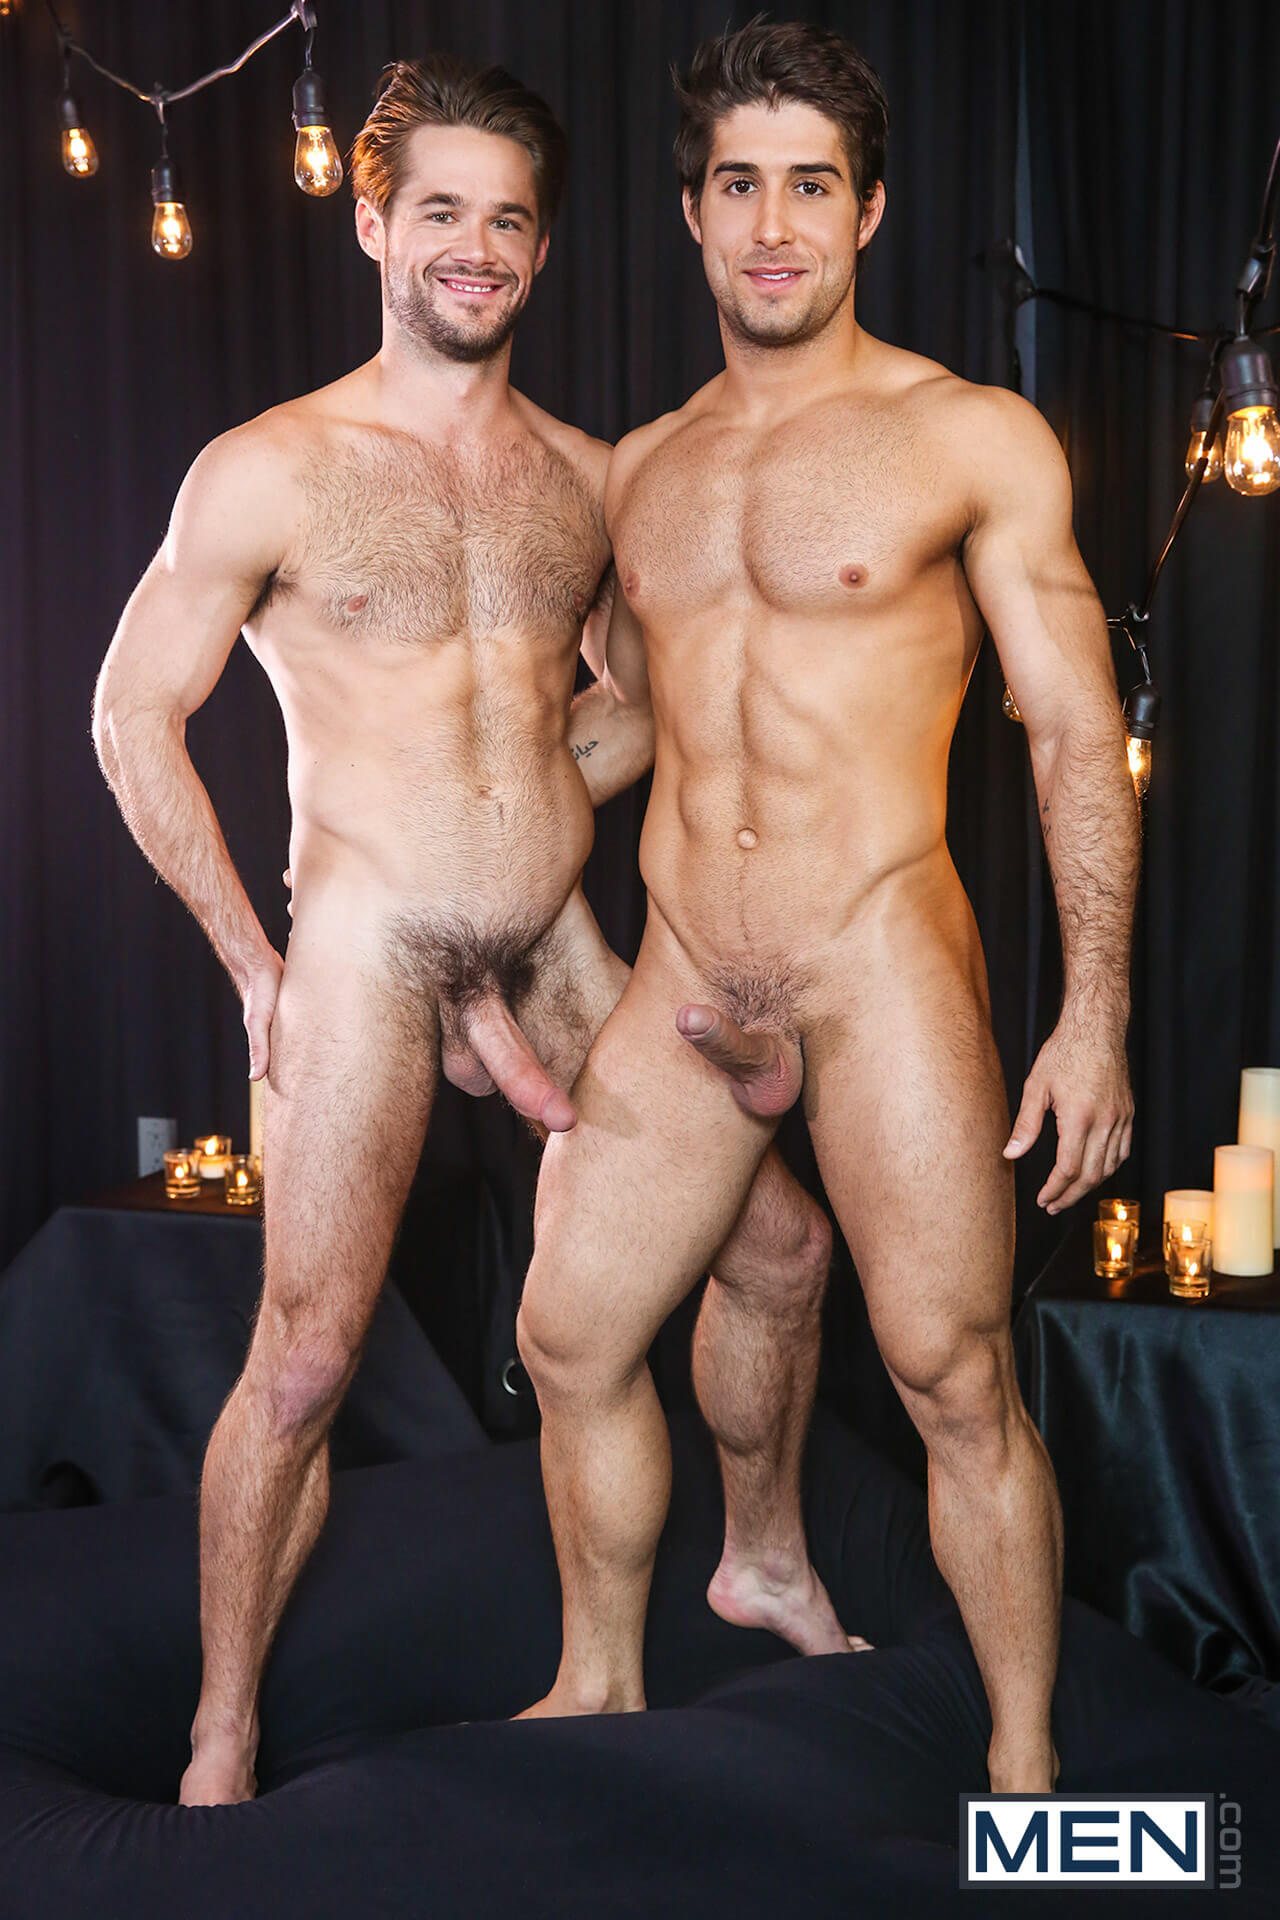 men gods of men dirty valentine part 3 diego sans mike de marko gay porn blog image 9